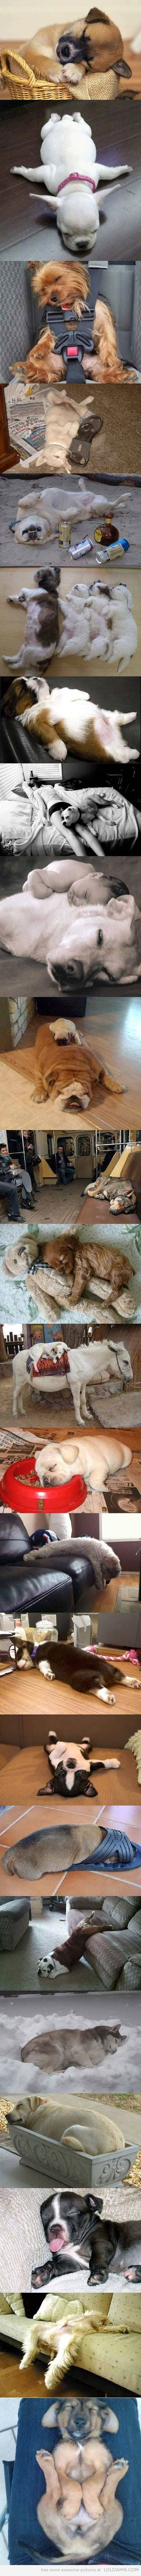 best funny animals images on pinterest fluffy pets funny